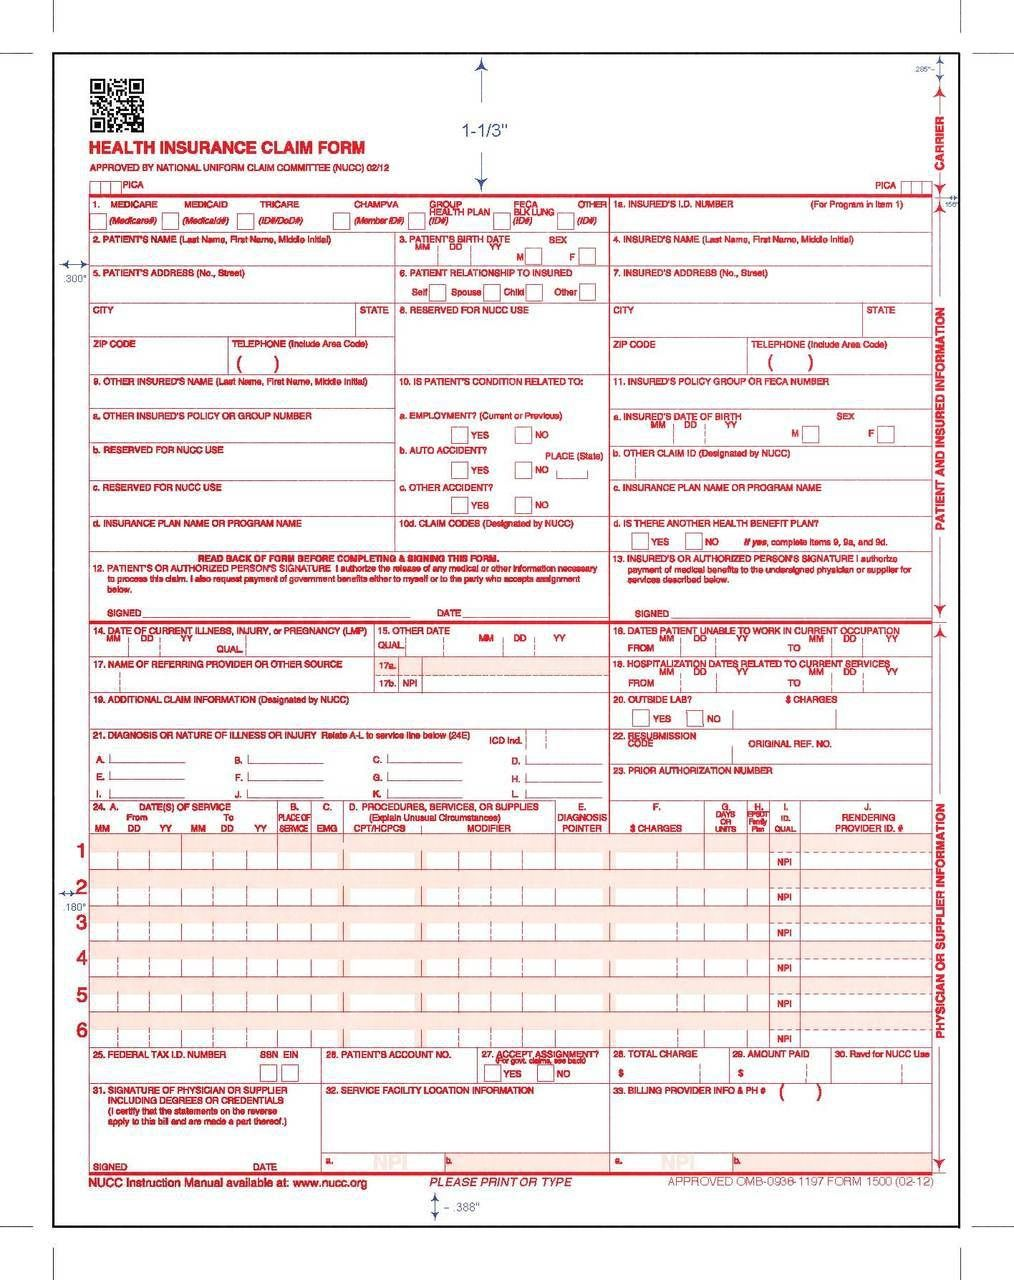 Cms 1500 Claim Form 2017 2018 Funeral Program Template